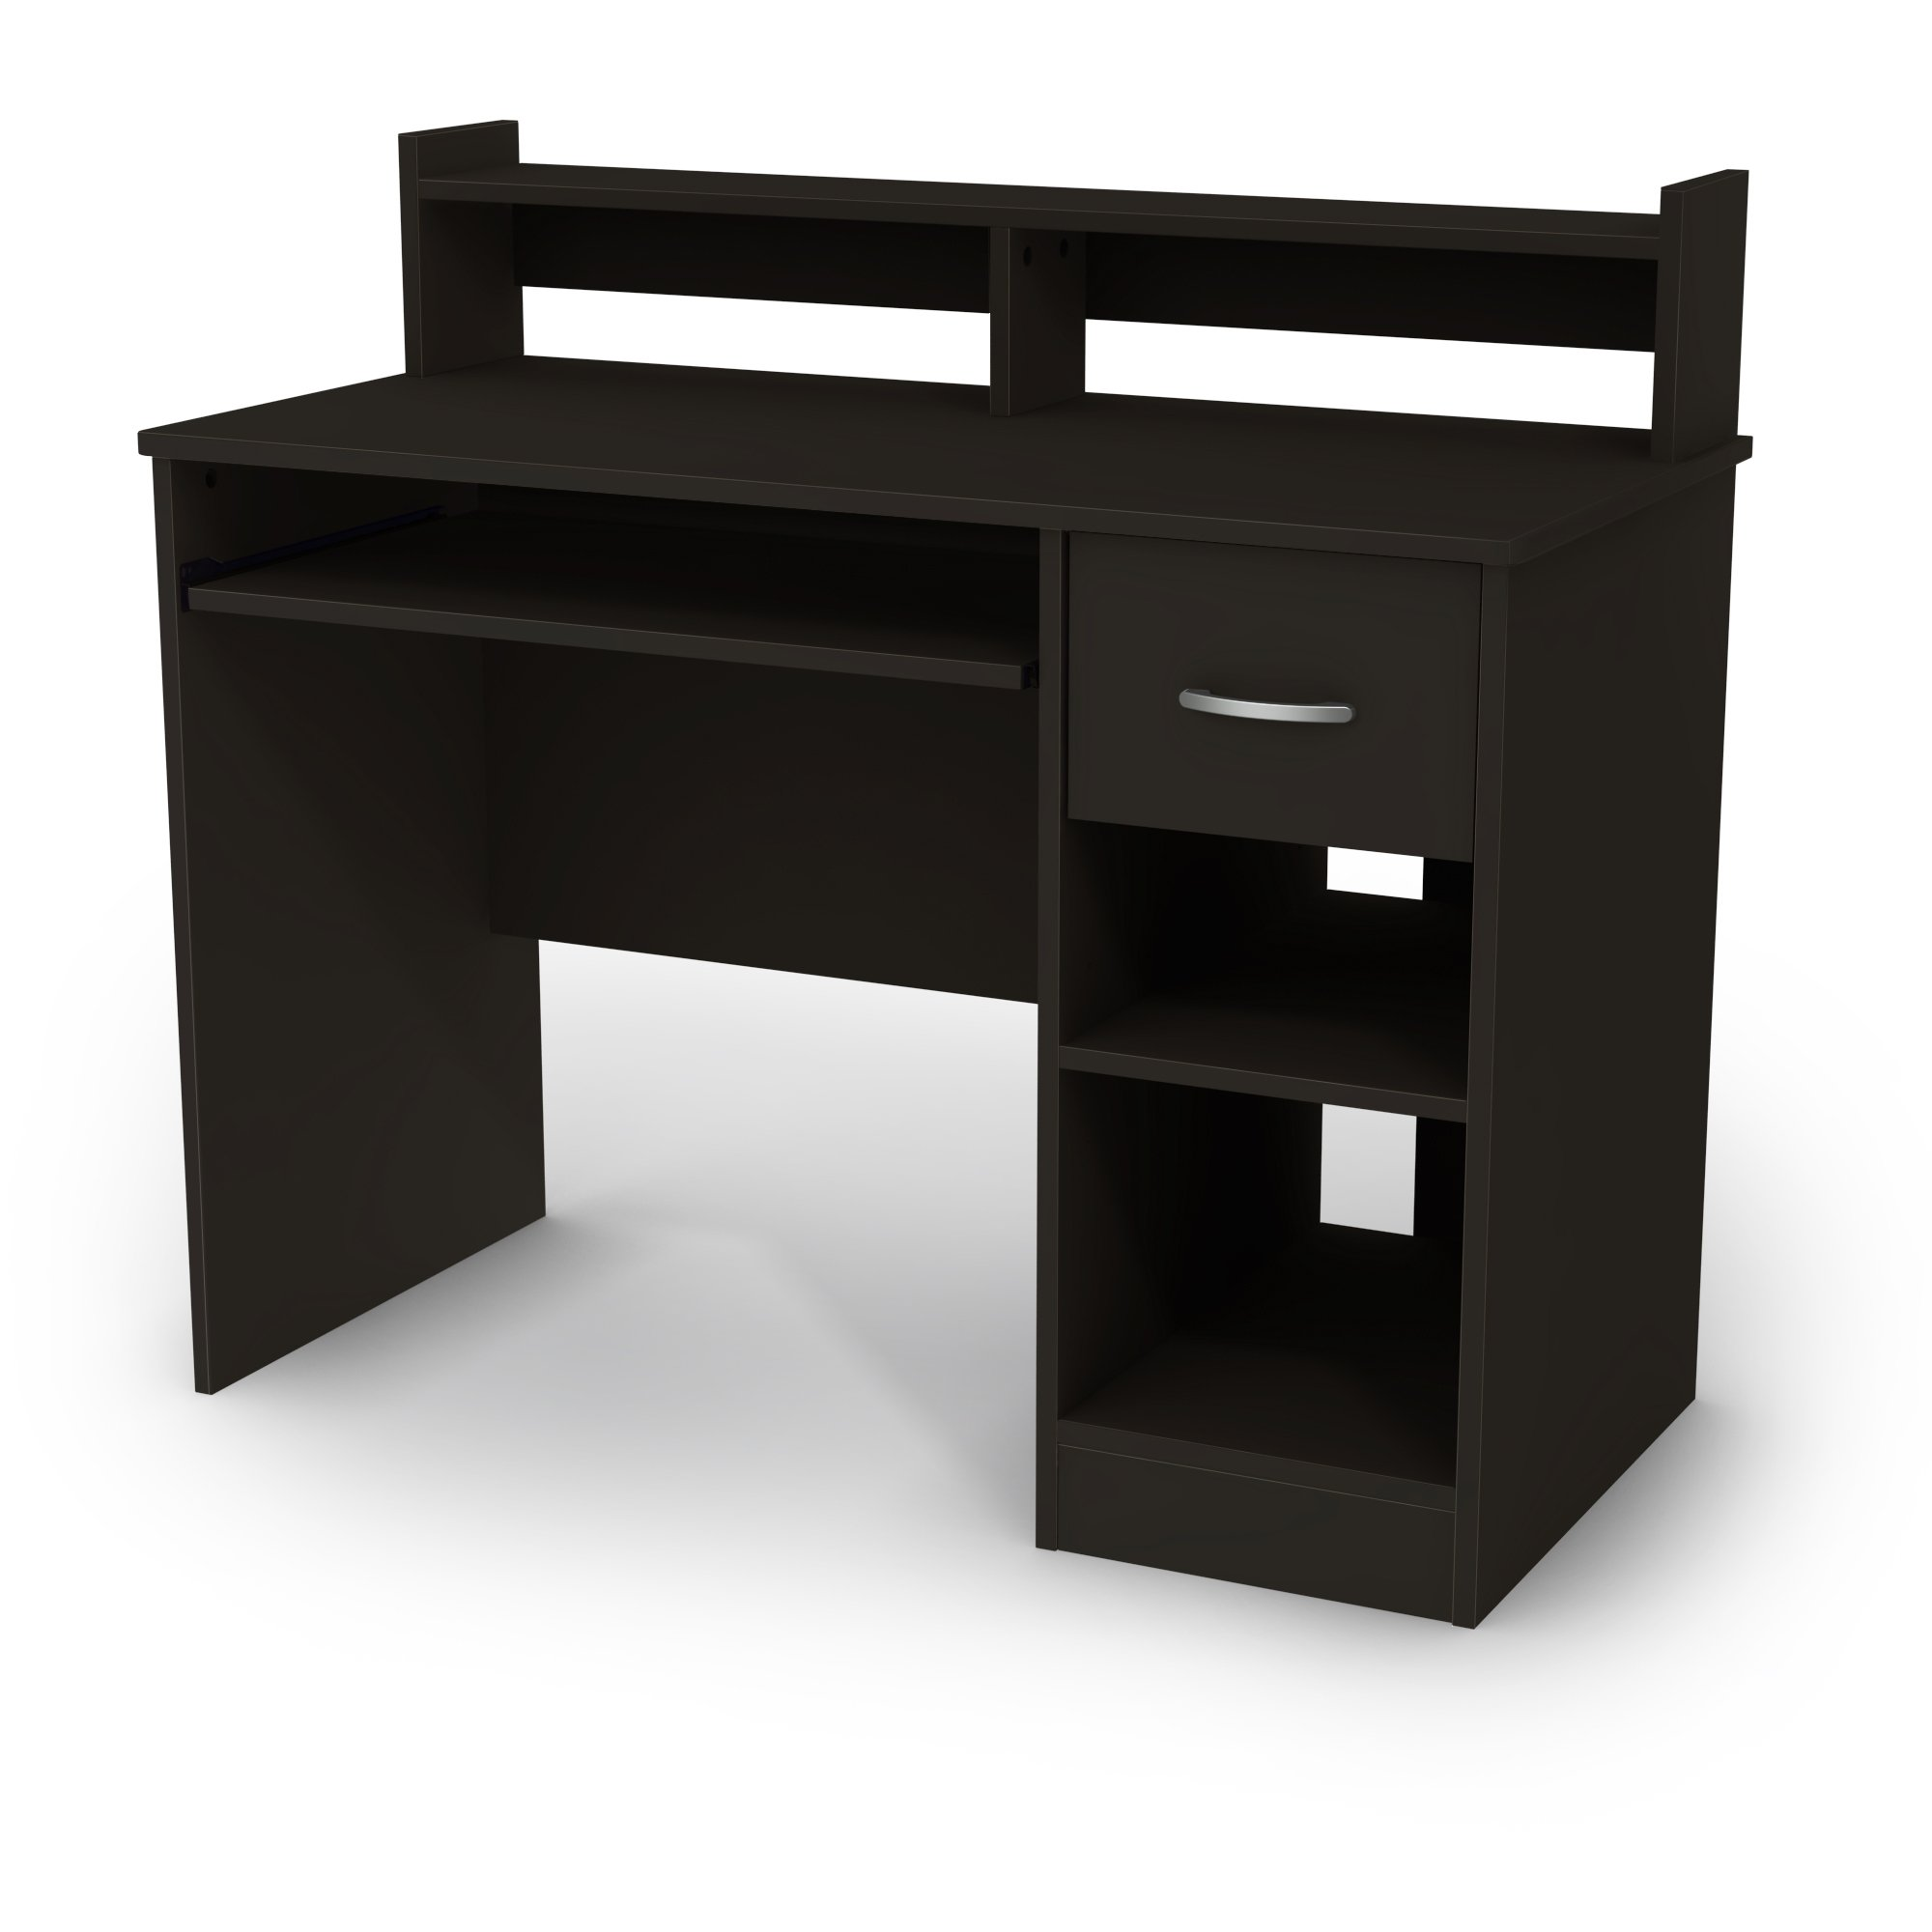 South Shore 7270076 Axess Desk with Keyboard Tray, Black by South Shore